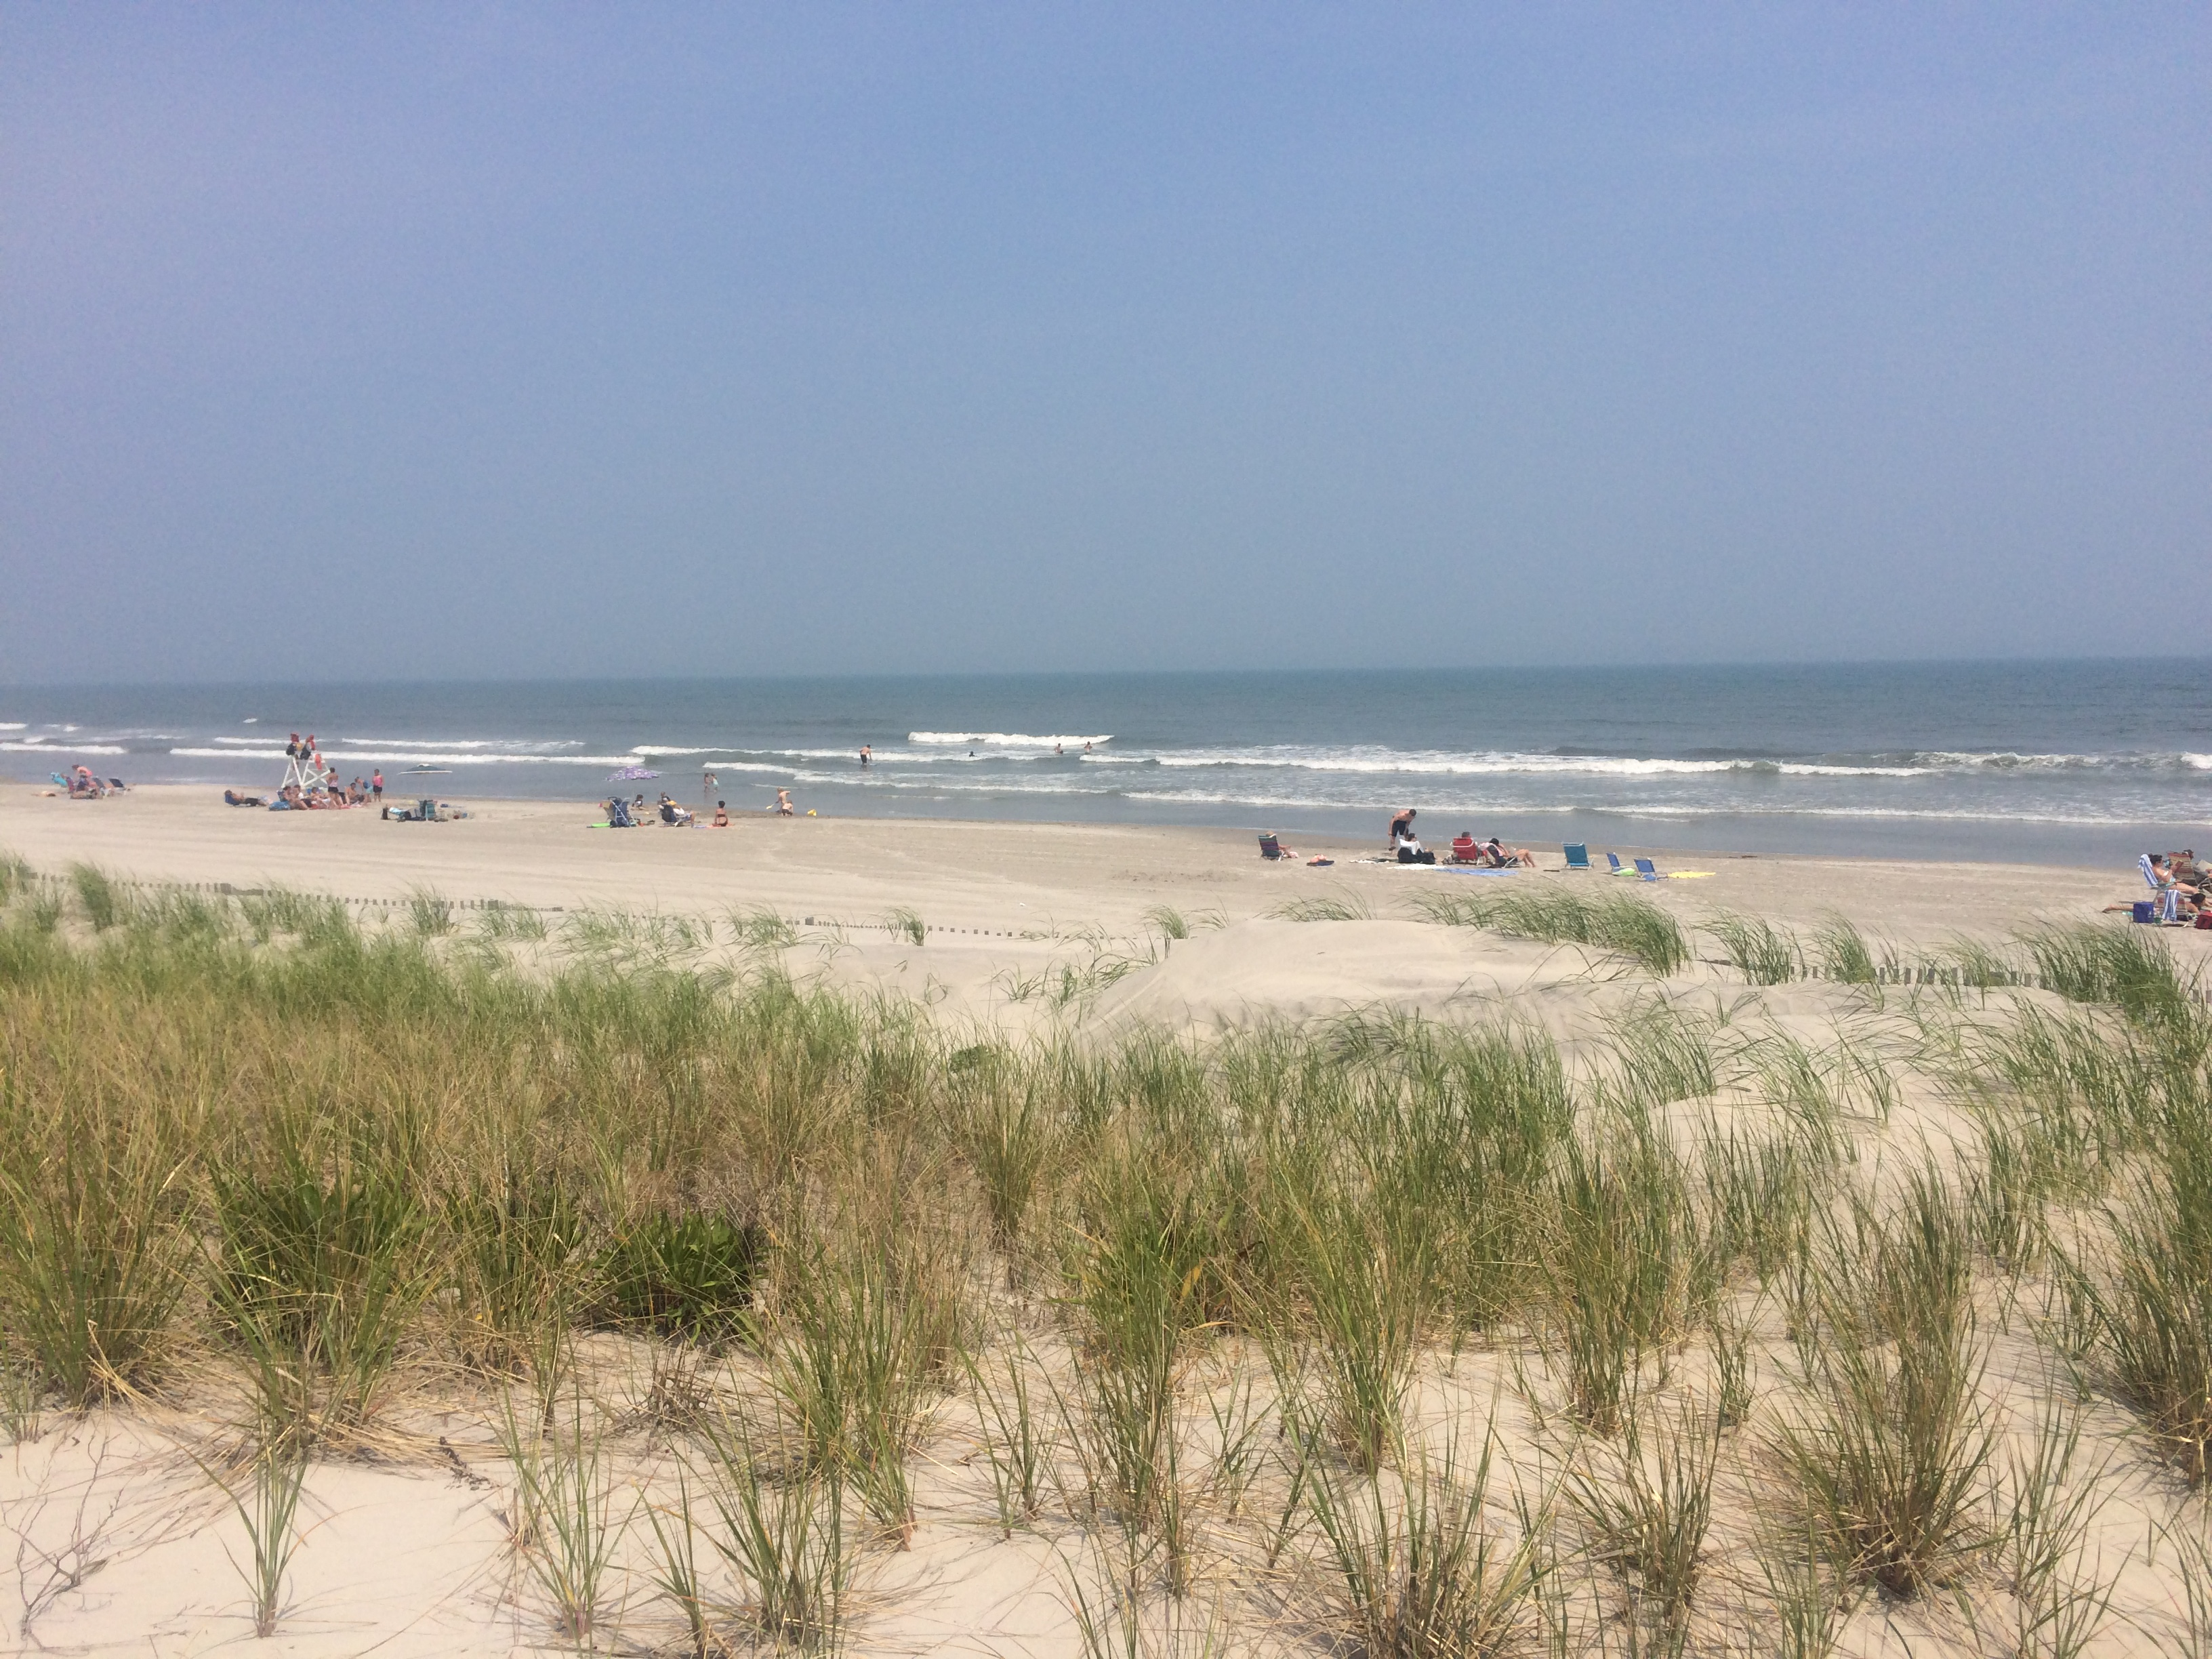 Special Spring 2018 Report On Condition Of Munil Beaches For Stone Harbor Nj